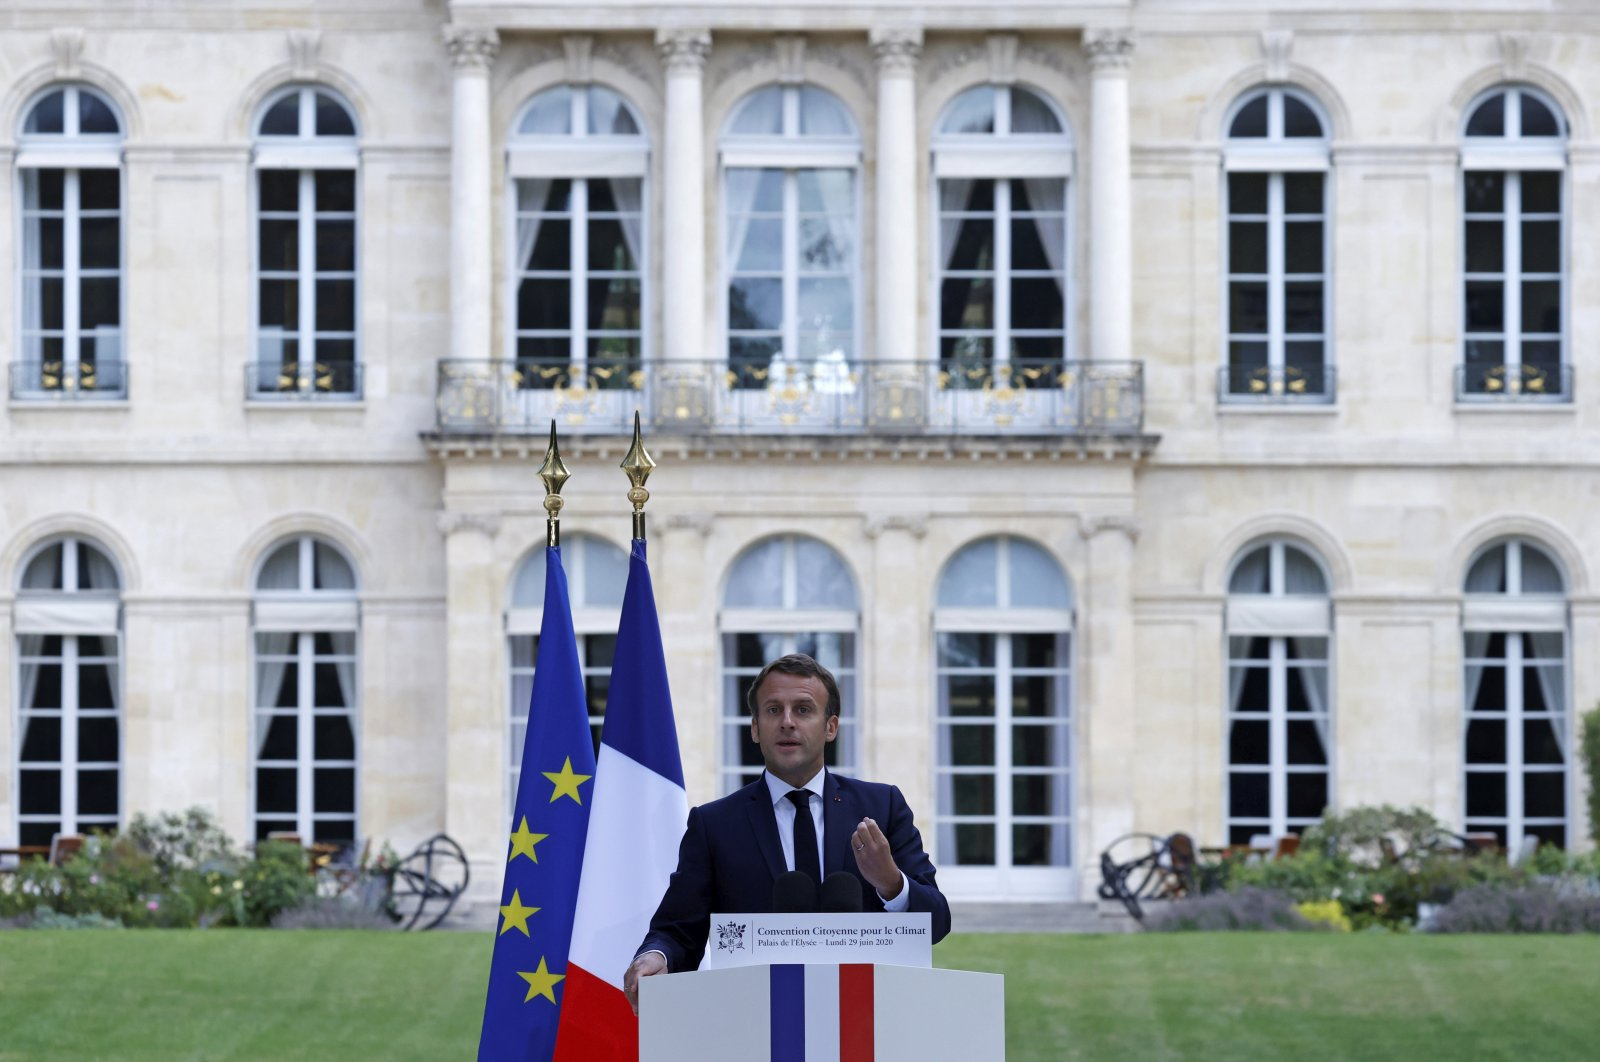 French President Emmanuel Macron delivers a speech at the Elysee Palace in Paris, June 29, 2020. (AP Photo)